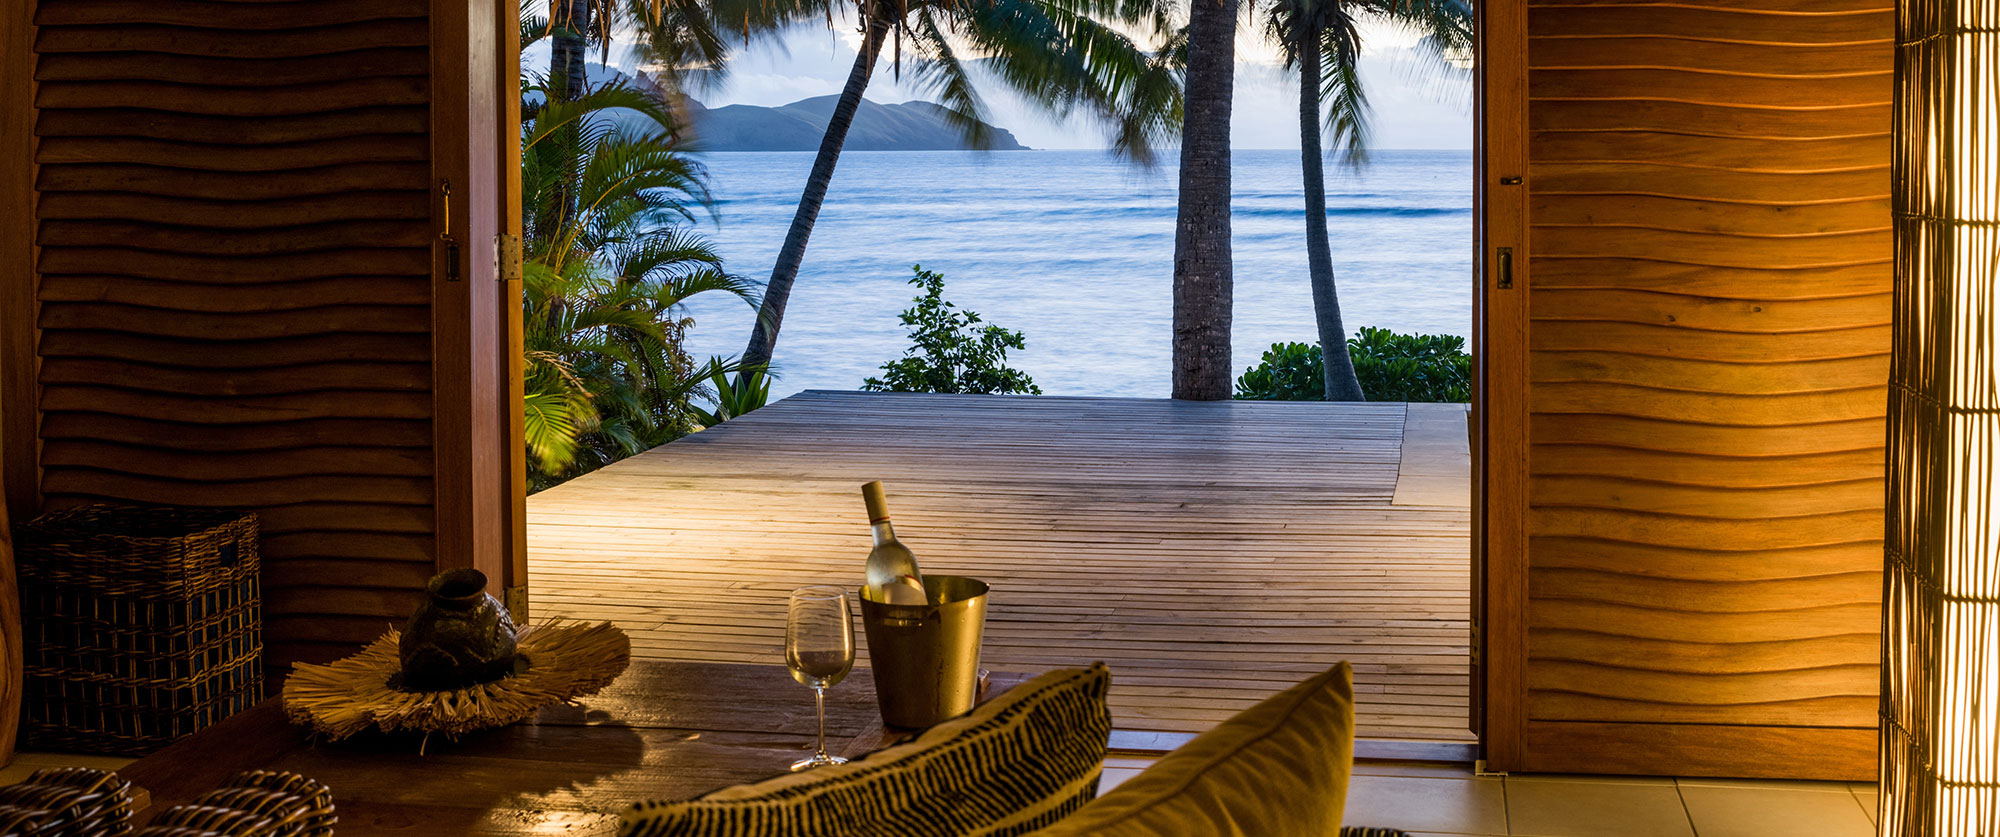 Luxury Fiji Vacation - Indulgence Spa Package - Tokoriki Resort Fiji